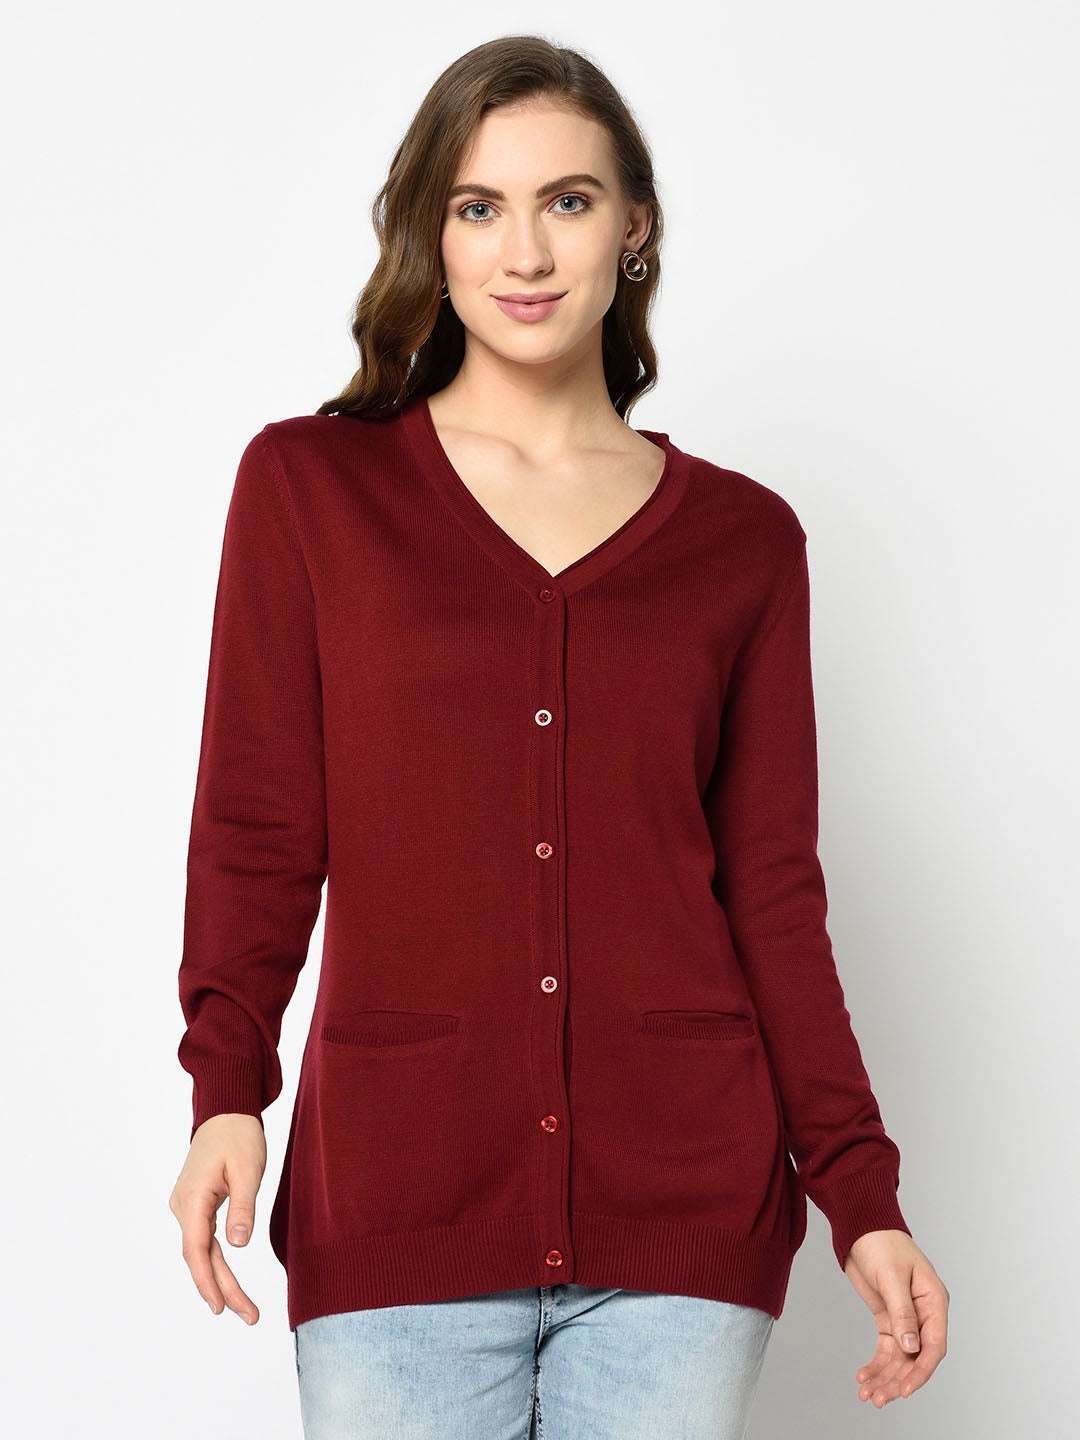 Maroon Cardigan with Pockets - Avsoy